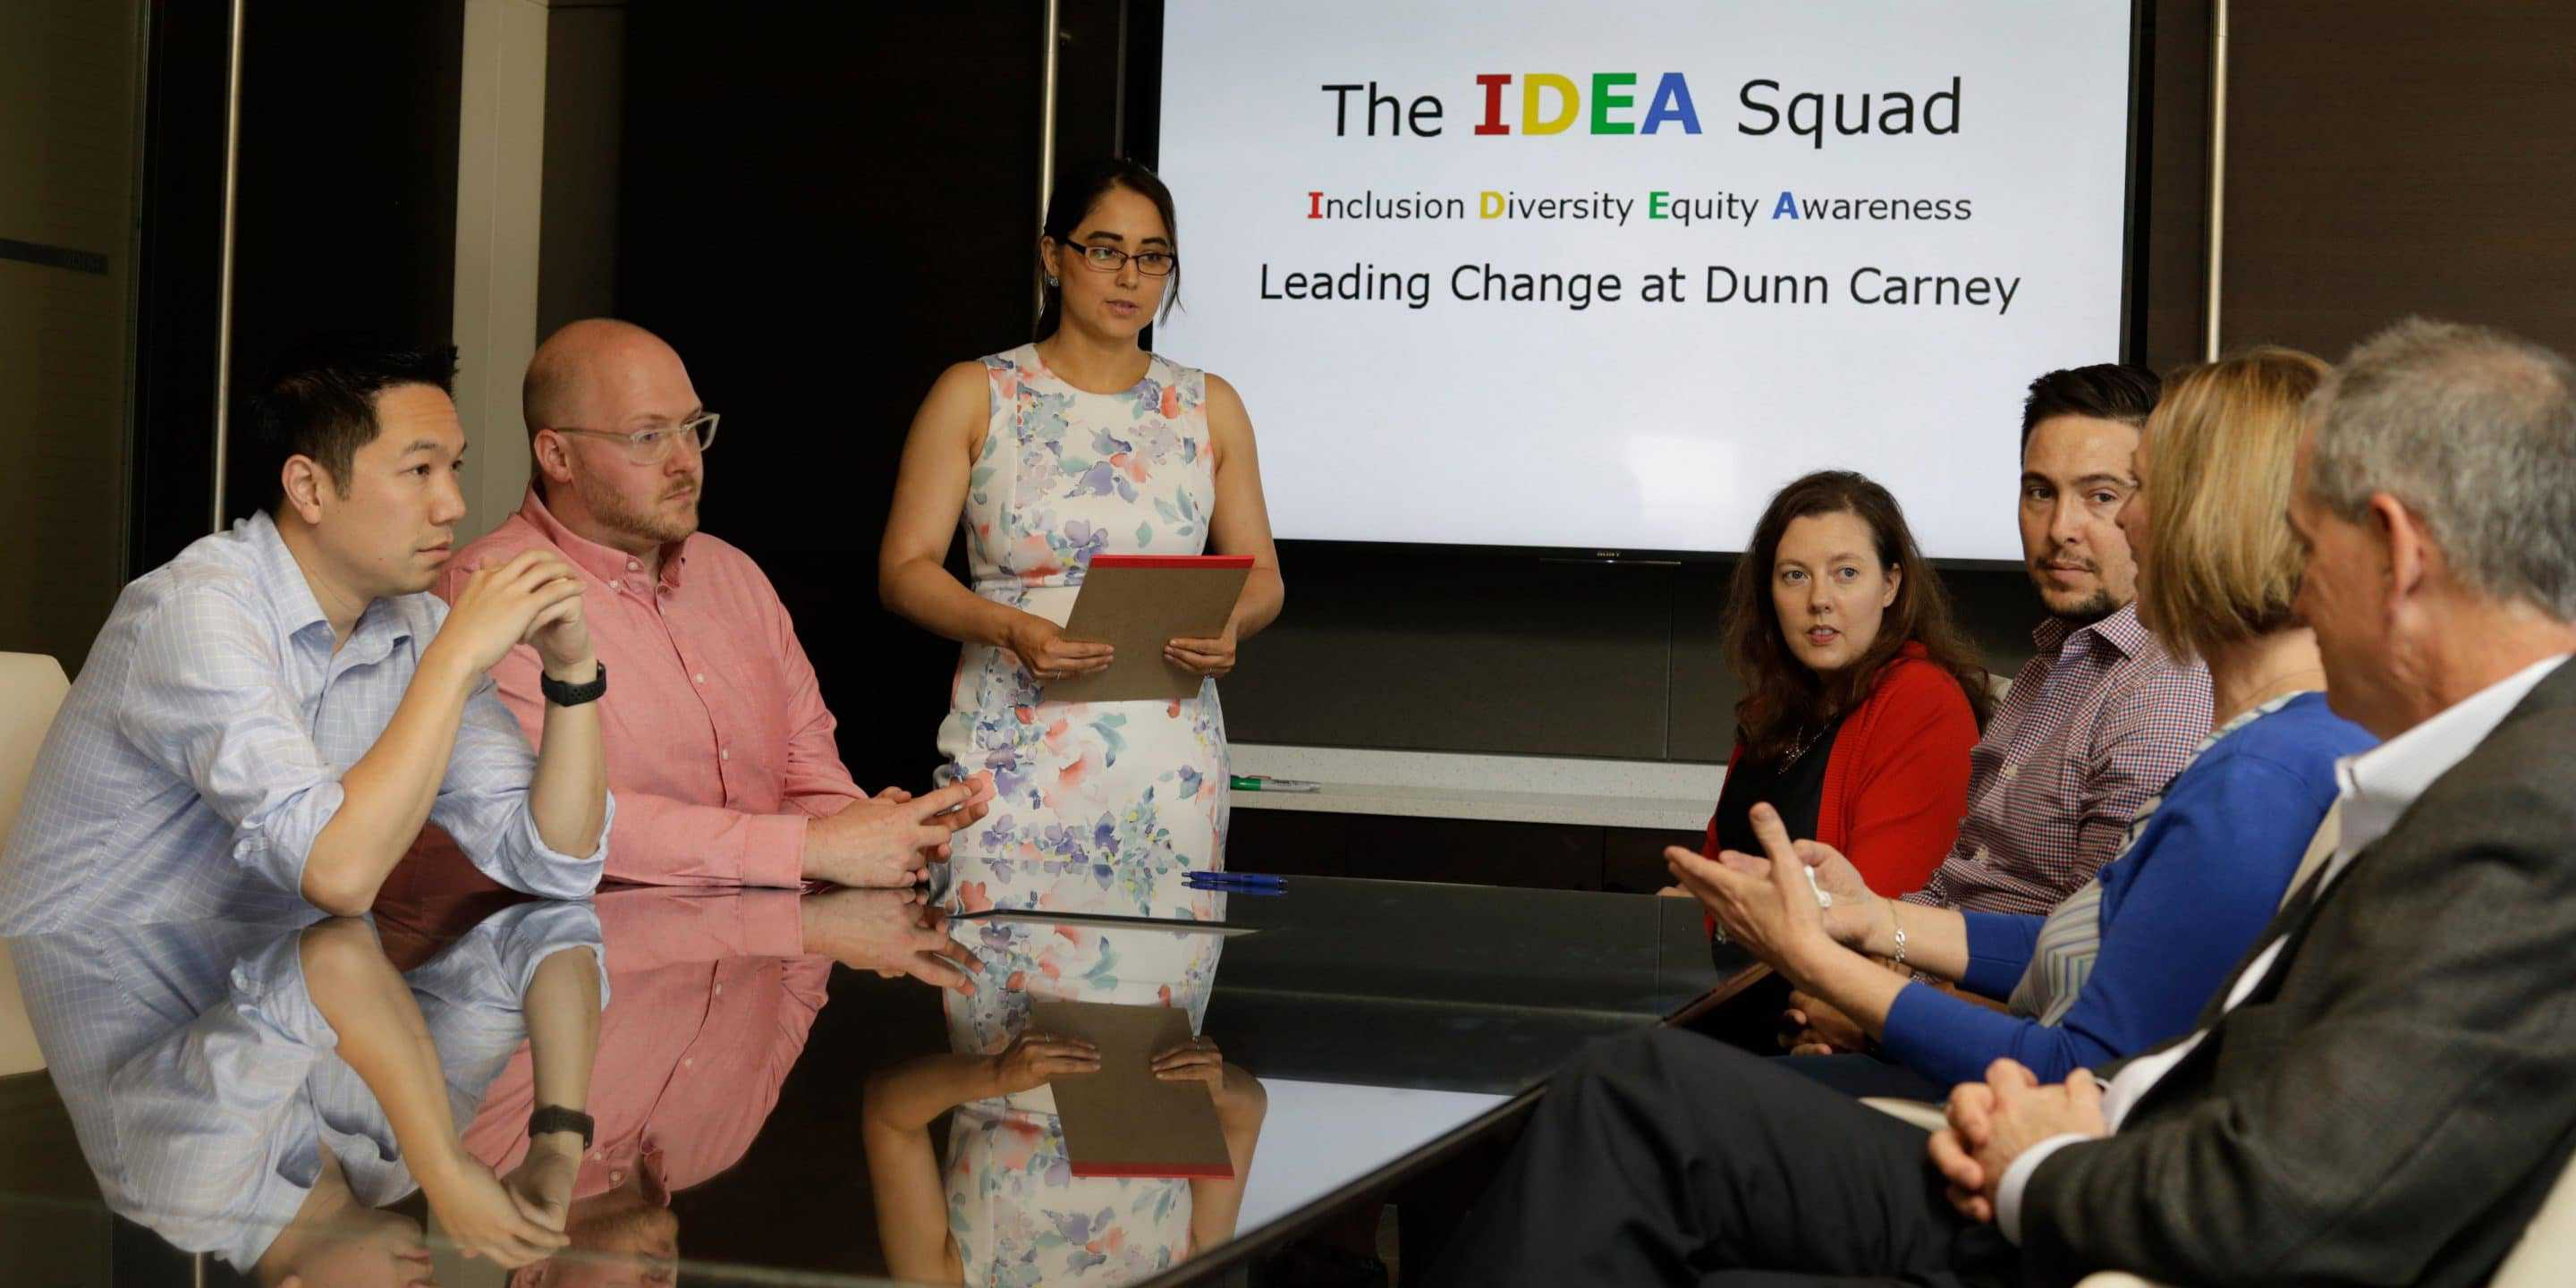 Dunn Carney's IDEA Squad embraces open discussion at meetings.